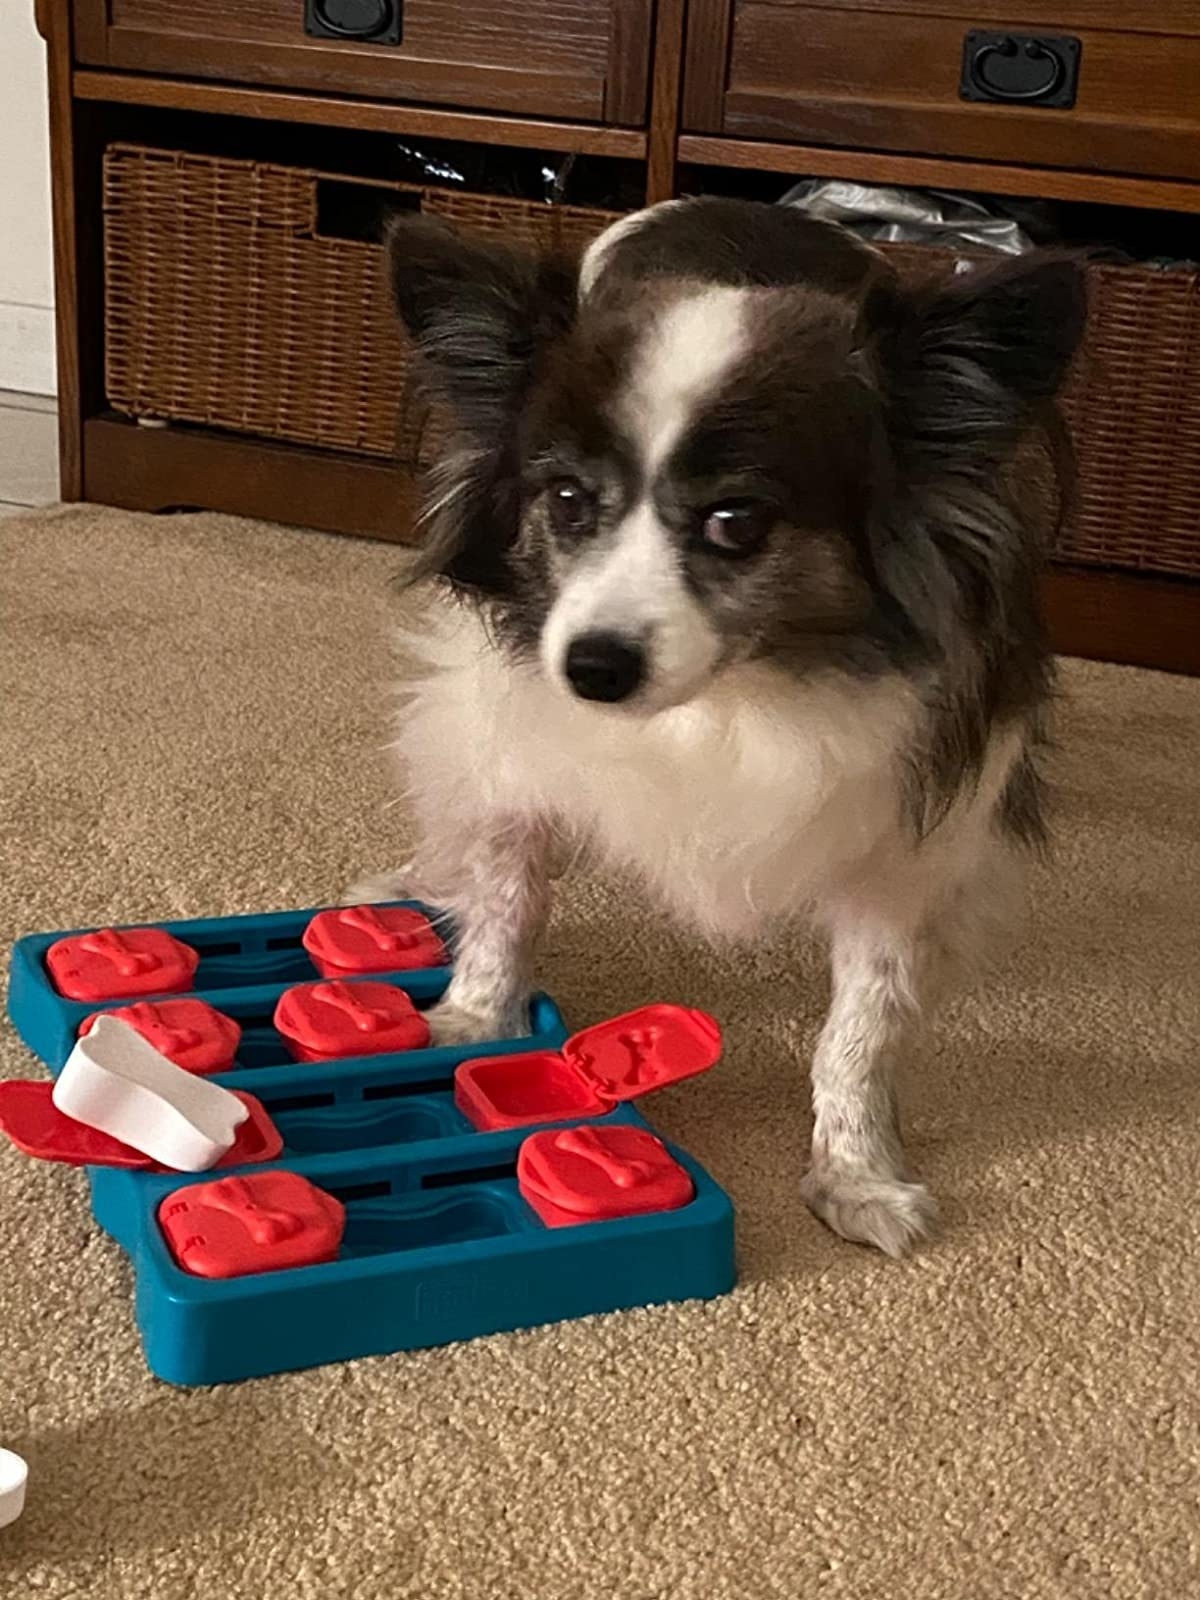 A small dog with the puzzle toy